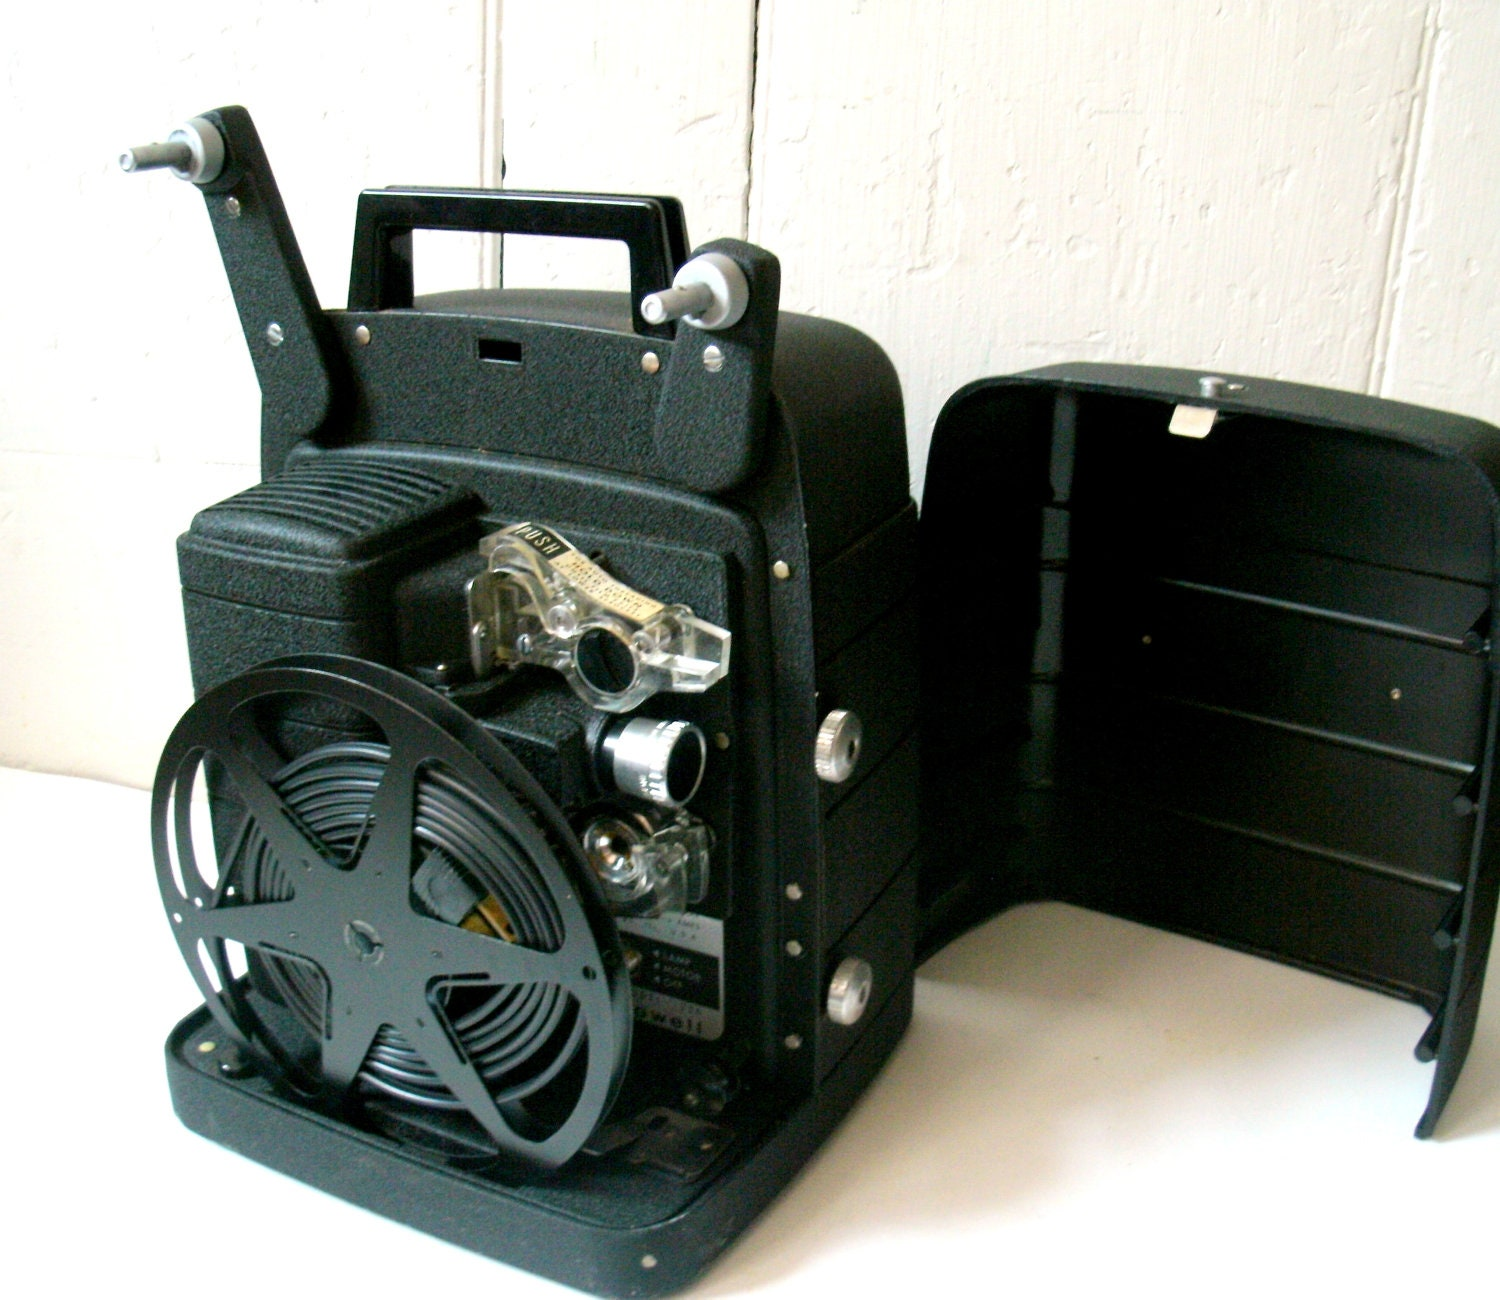 60s vintage 8mm movie projector bell and howell auto feed 256. Black Bedroom Furniture Sets. Home Design Ideas